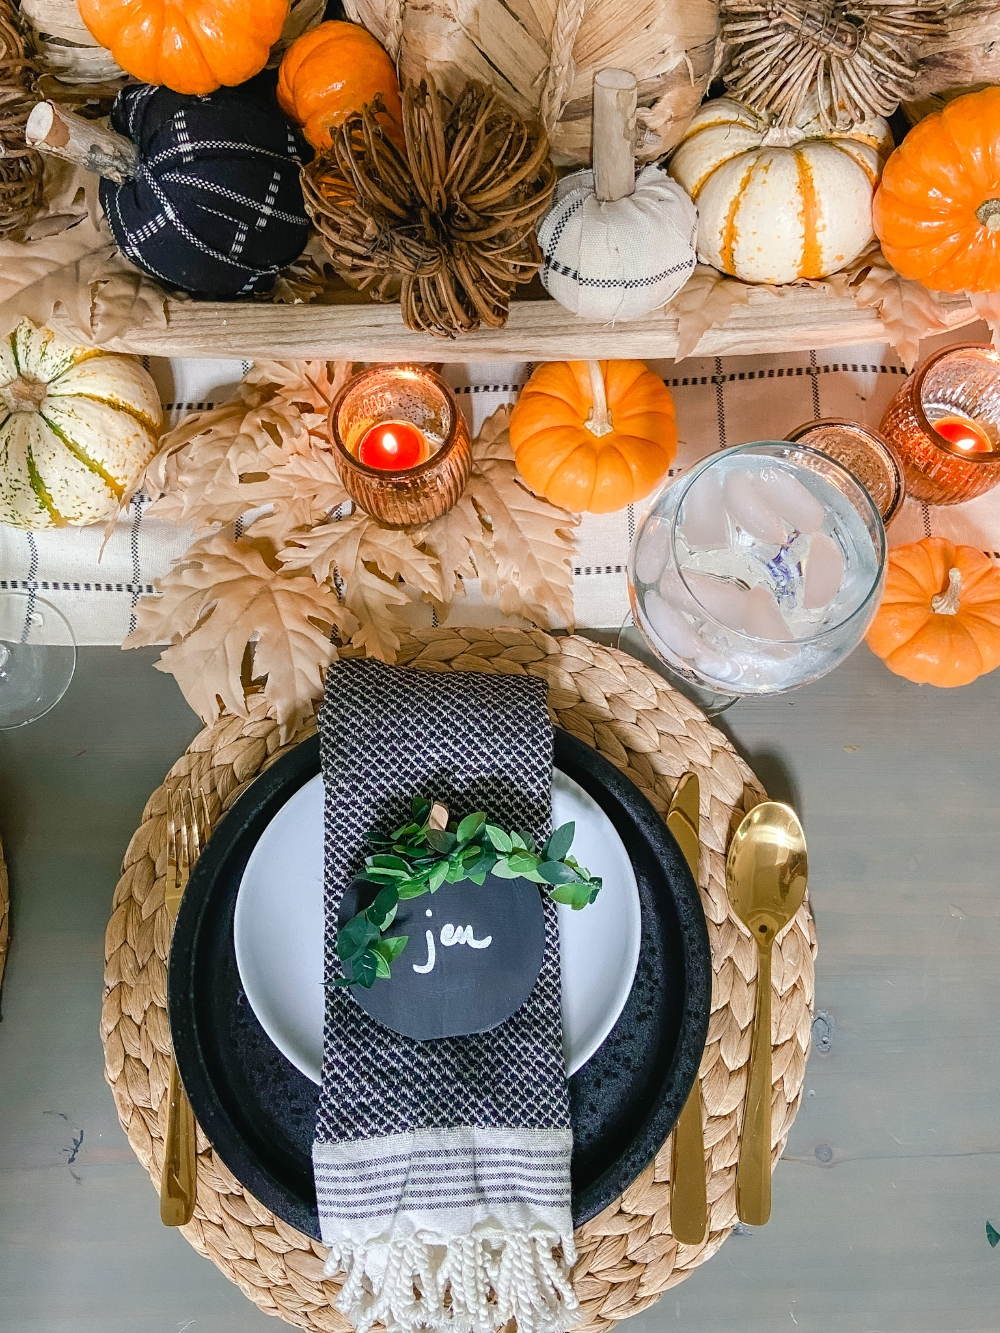 DIY Wood Chalkboard Pumpkin Place Markers. Get ready for fall entertaining by making these easy pumpkin-shaped wood chalkboard place markers! It's a 10-minute project that can be used all autumn long!